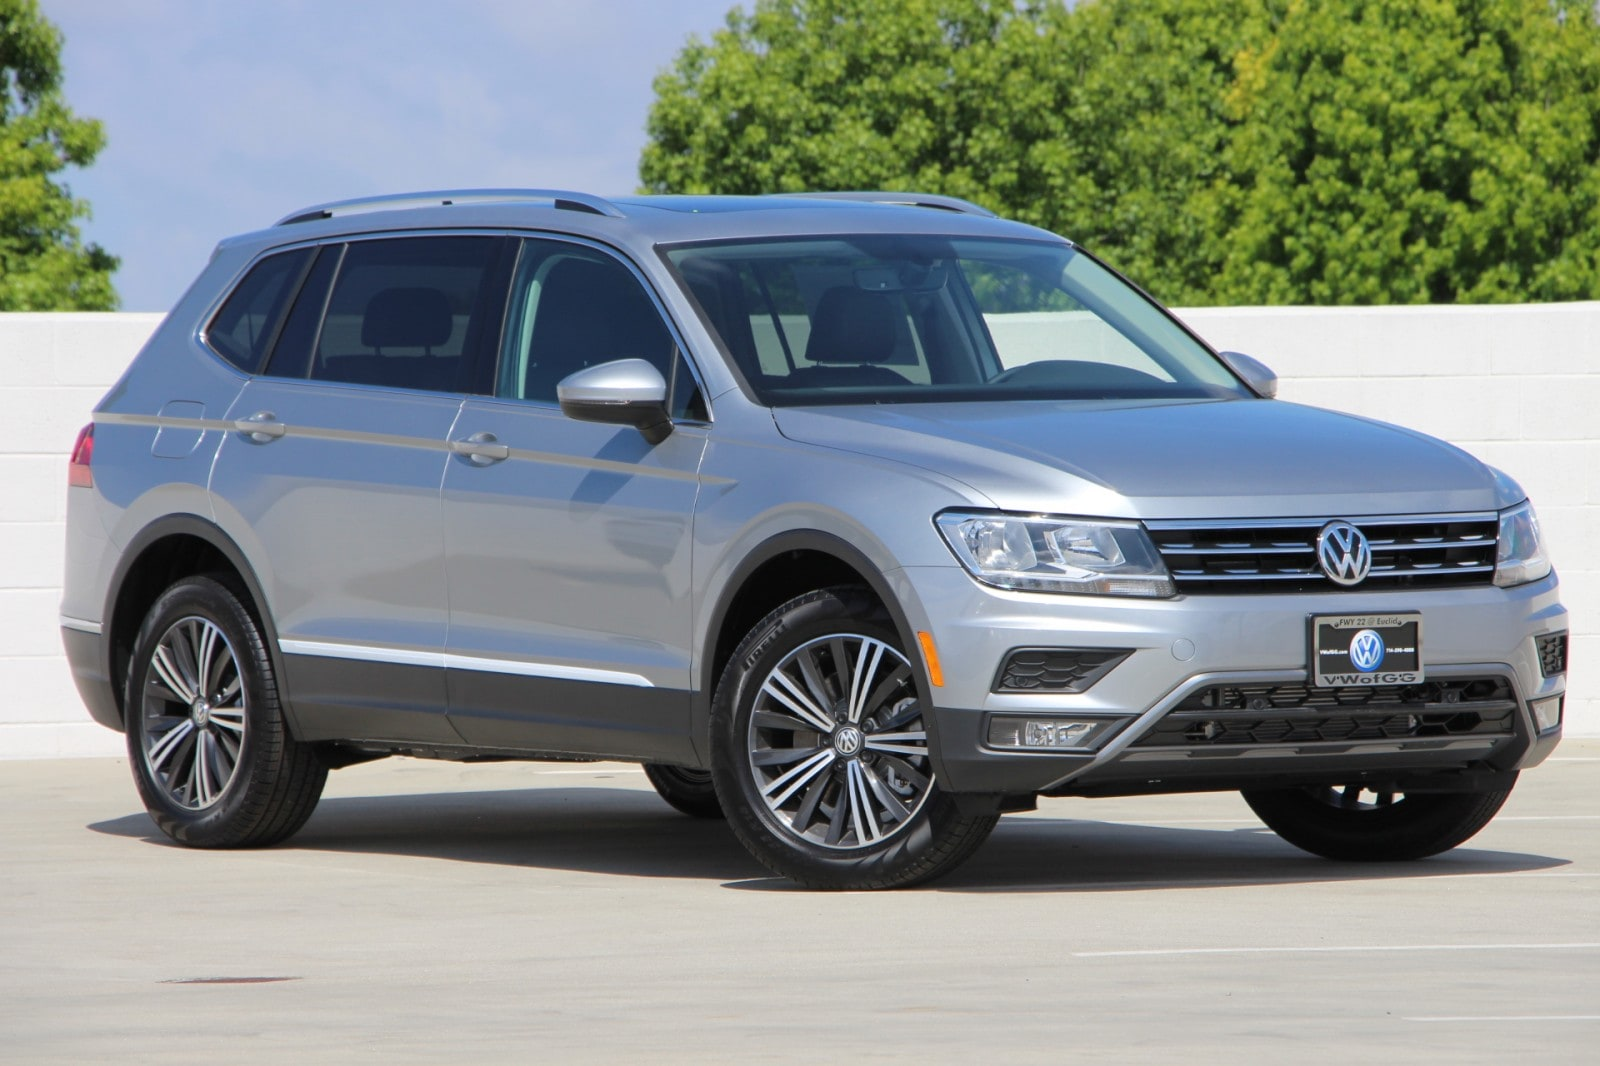 New 2019 Volkswagen Tiguan For Sale at CIRCLE Automotive